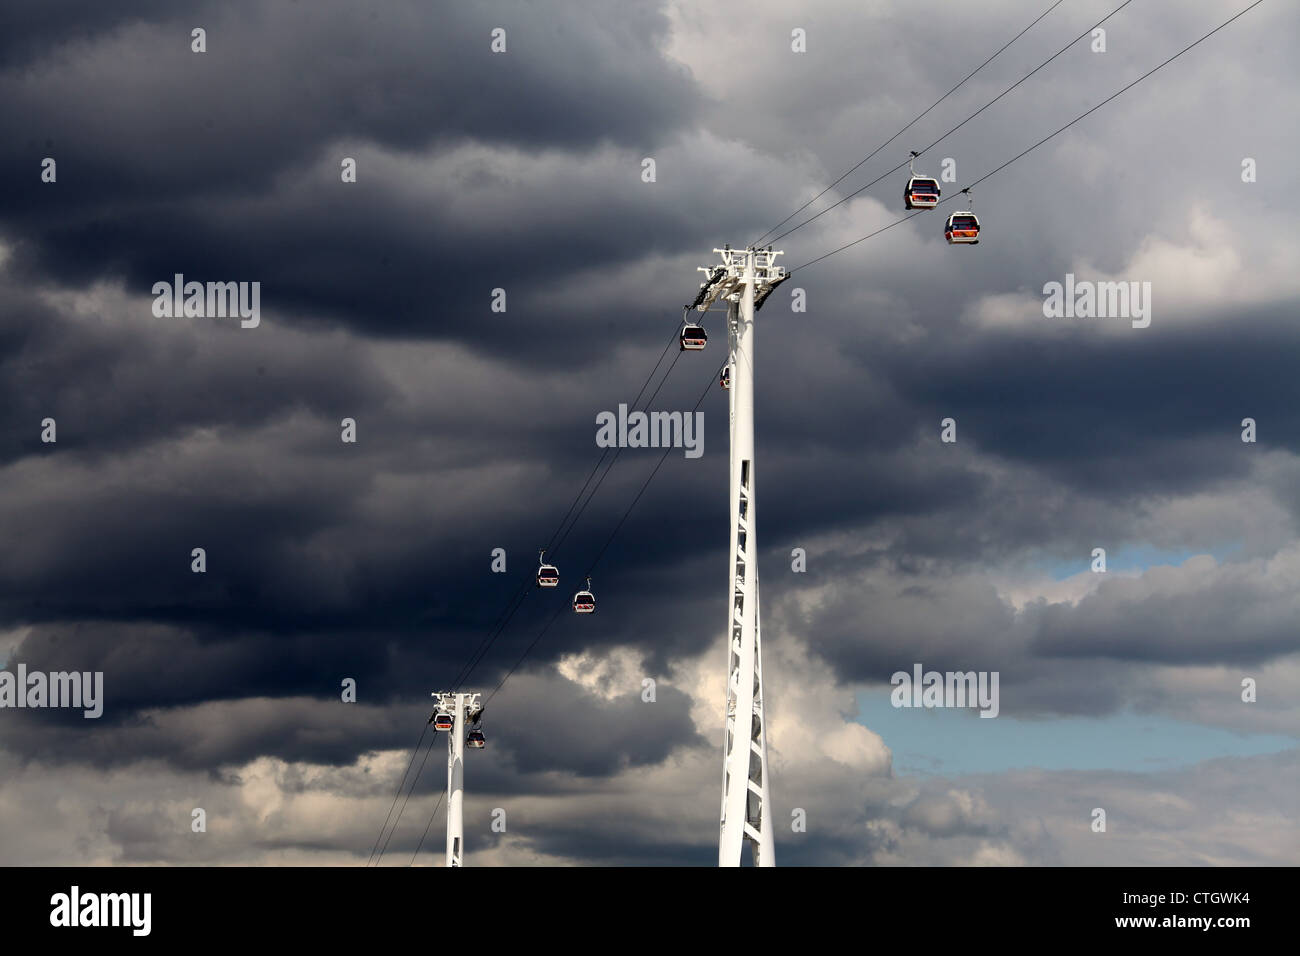 Emirates Air Line which is also known as the Thames Cable Car Stock Photo